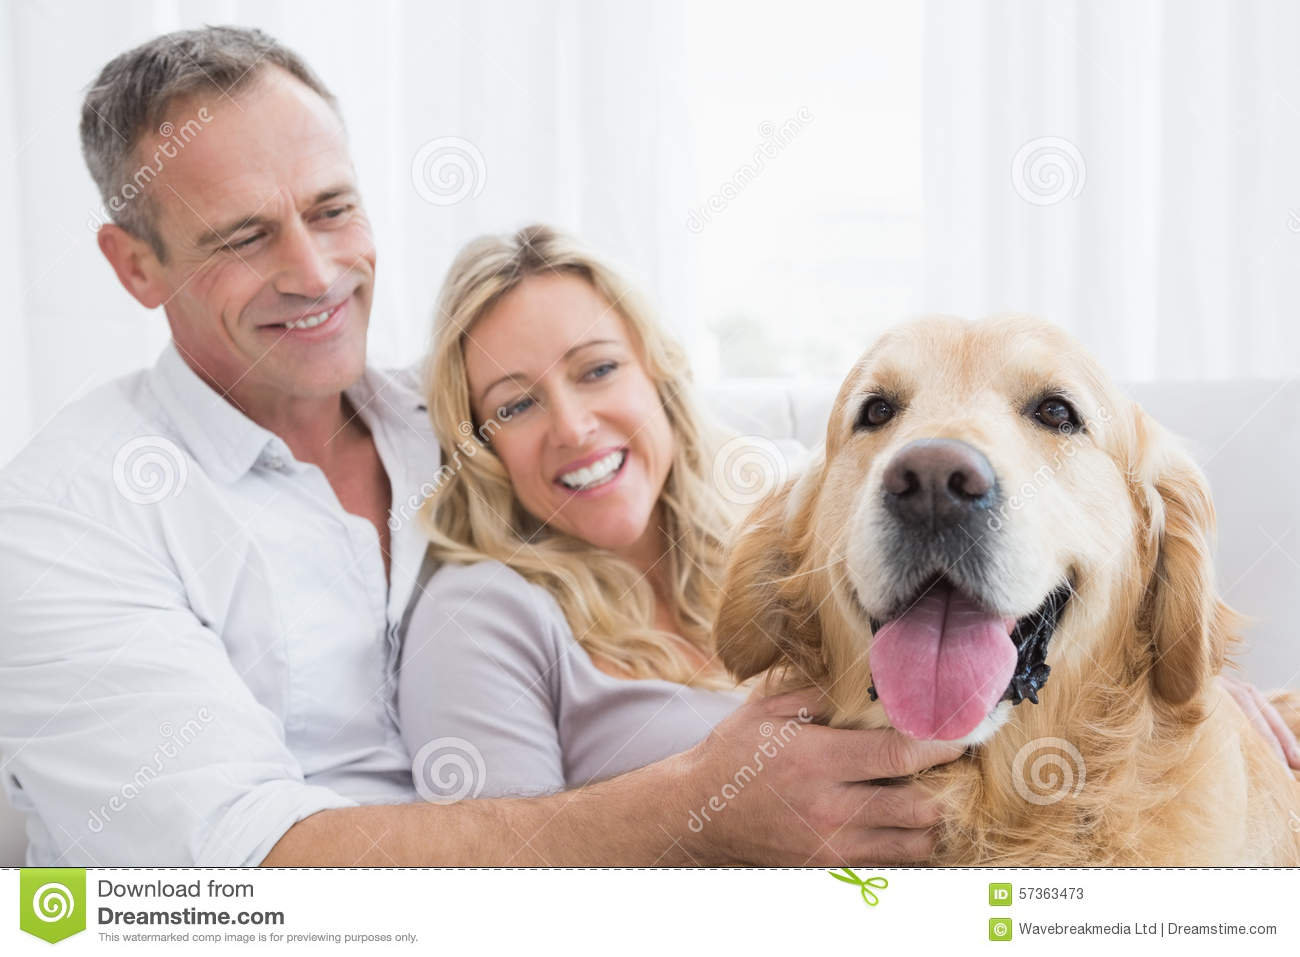 Smiling Couple Petting Their Golden Retriever On The Couch Stock